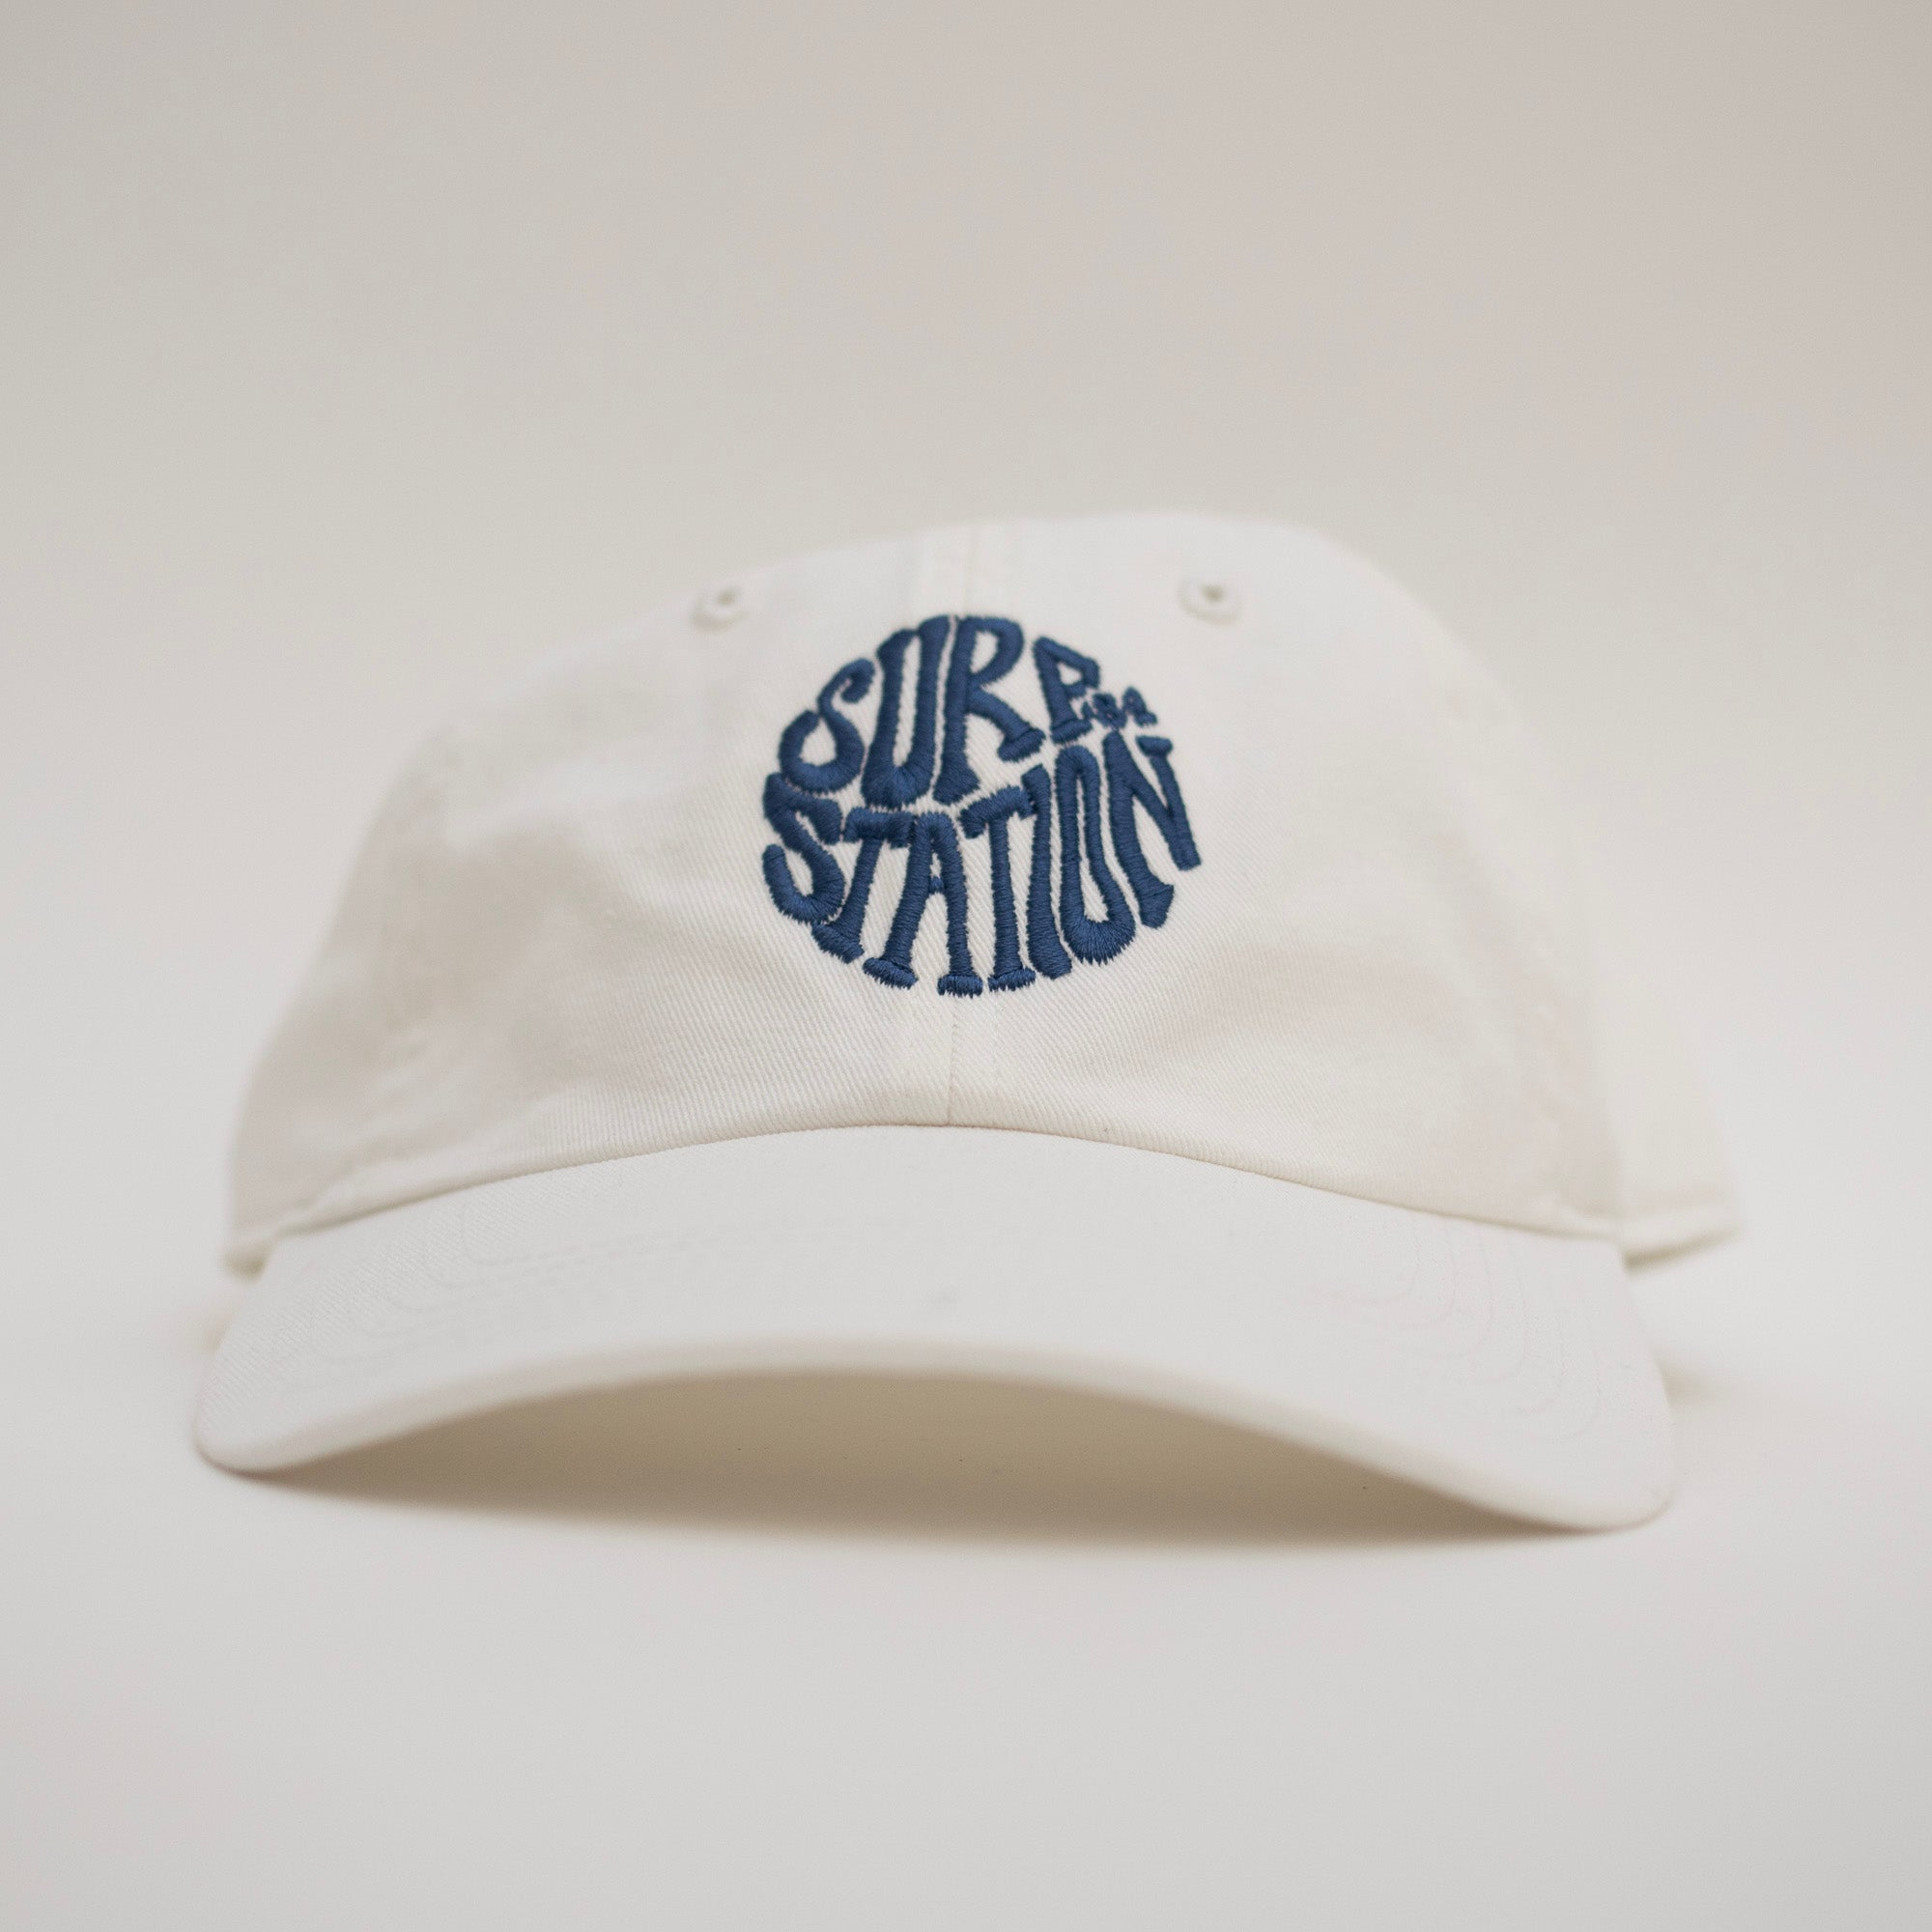 Surf Station '84 Worn Texture Men's Hat